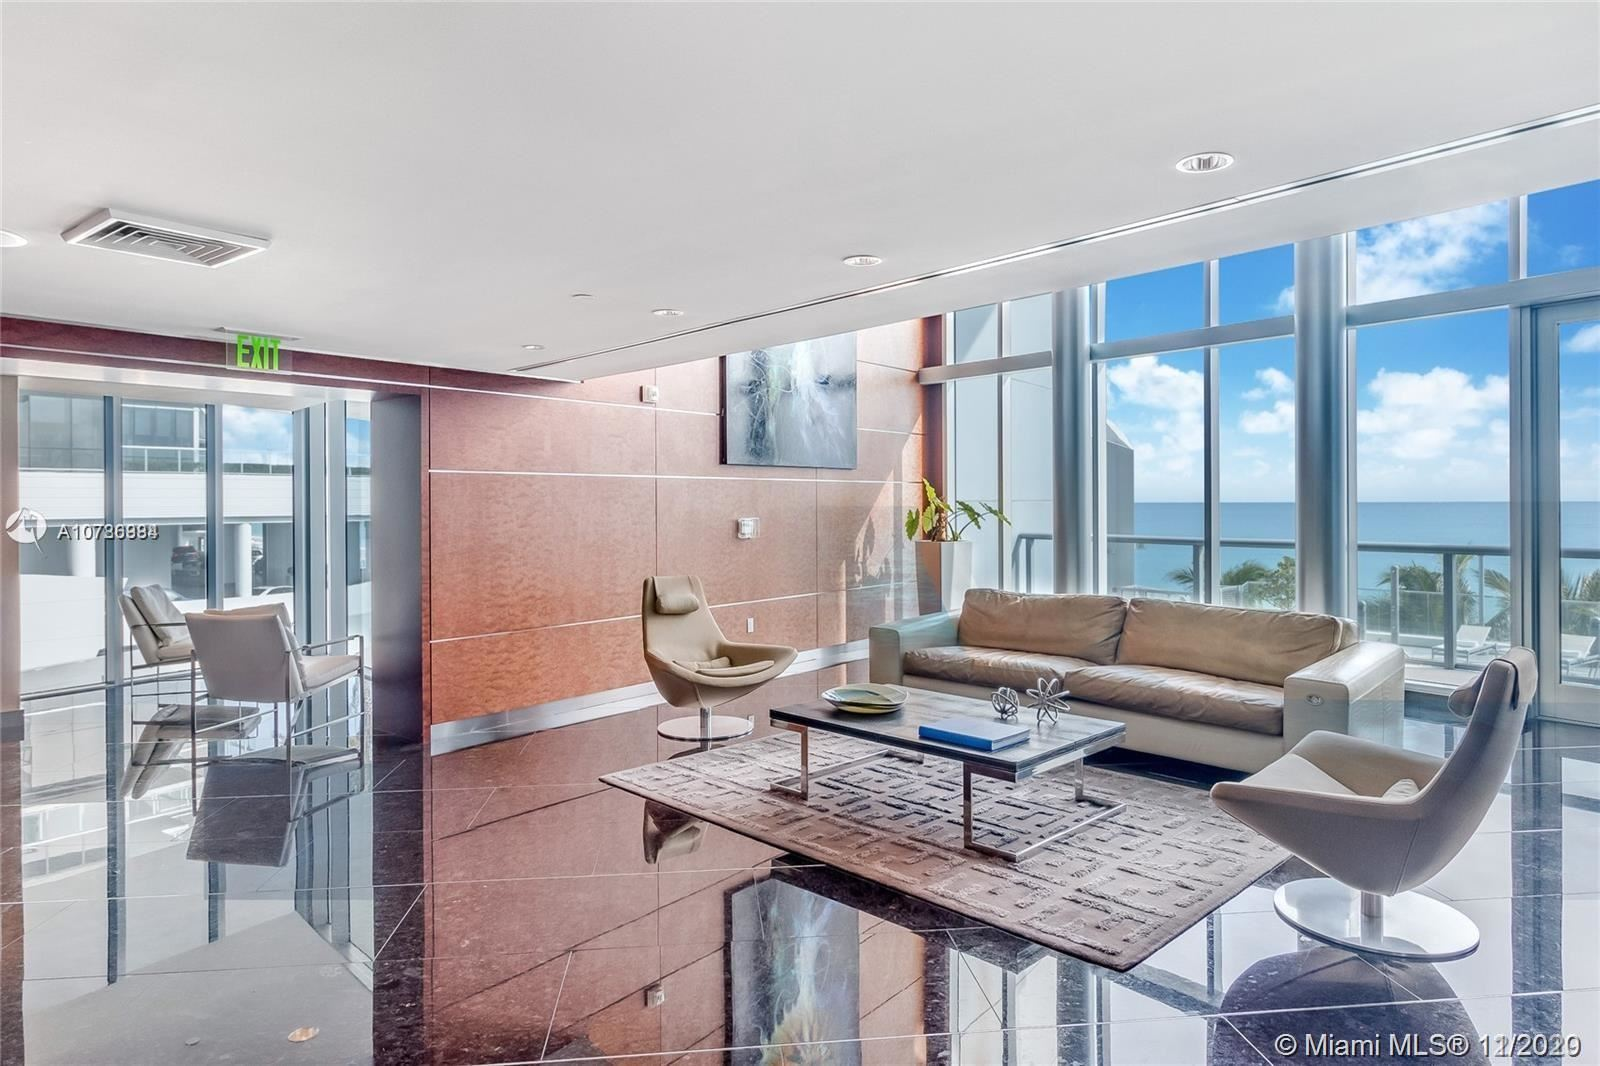 17001 Collins Ave #2003, Sunny Isles, FL 33160 - #: A10786984